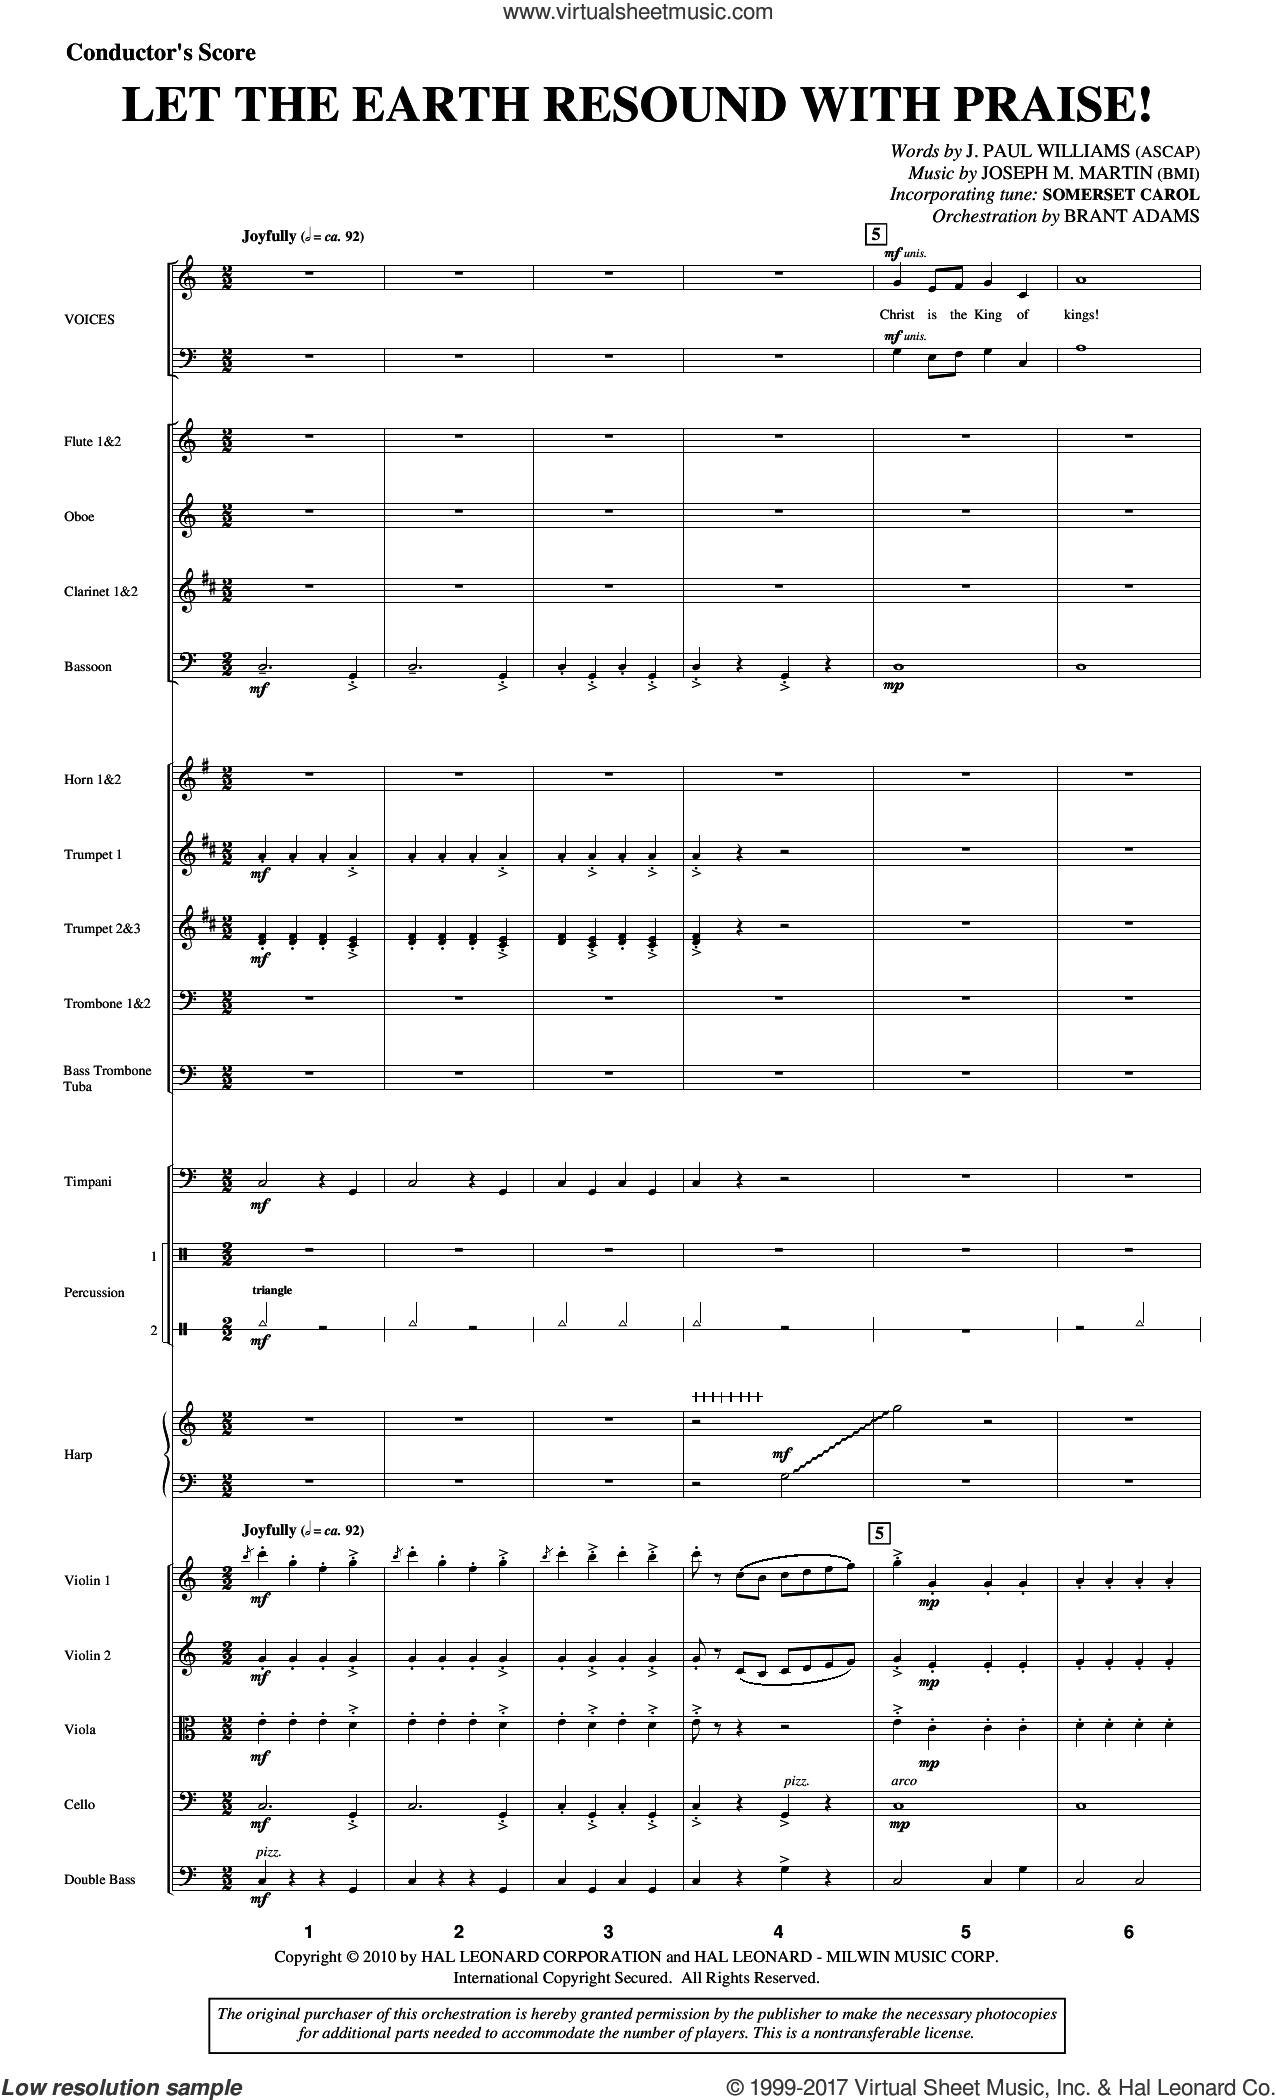 Let The Earth Resound with Praise! (COMPLETE) sheet music for orchestra/band by Joseph Martin, J. Paul Williams, Joseph M. Martin and Miscellaneous, intermediate. Score Image Preview.